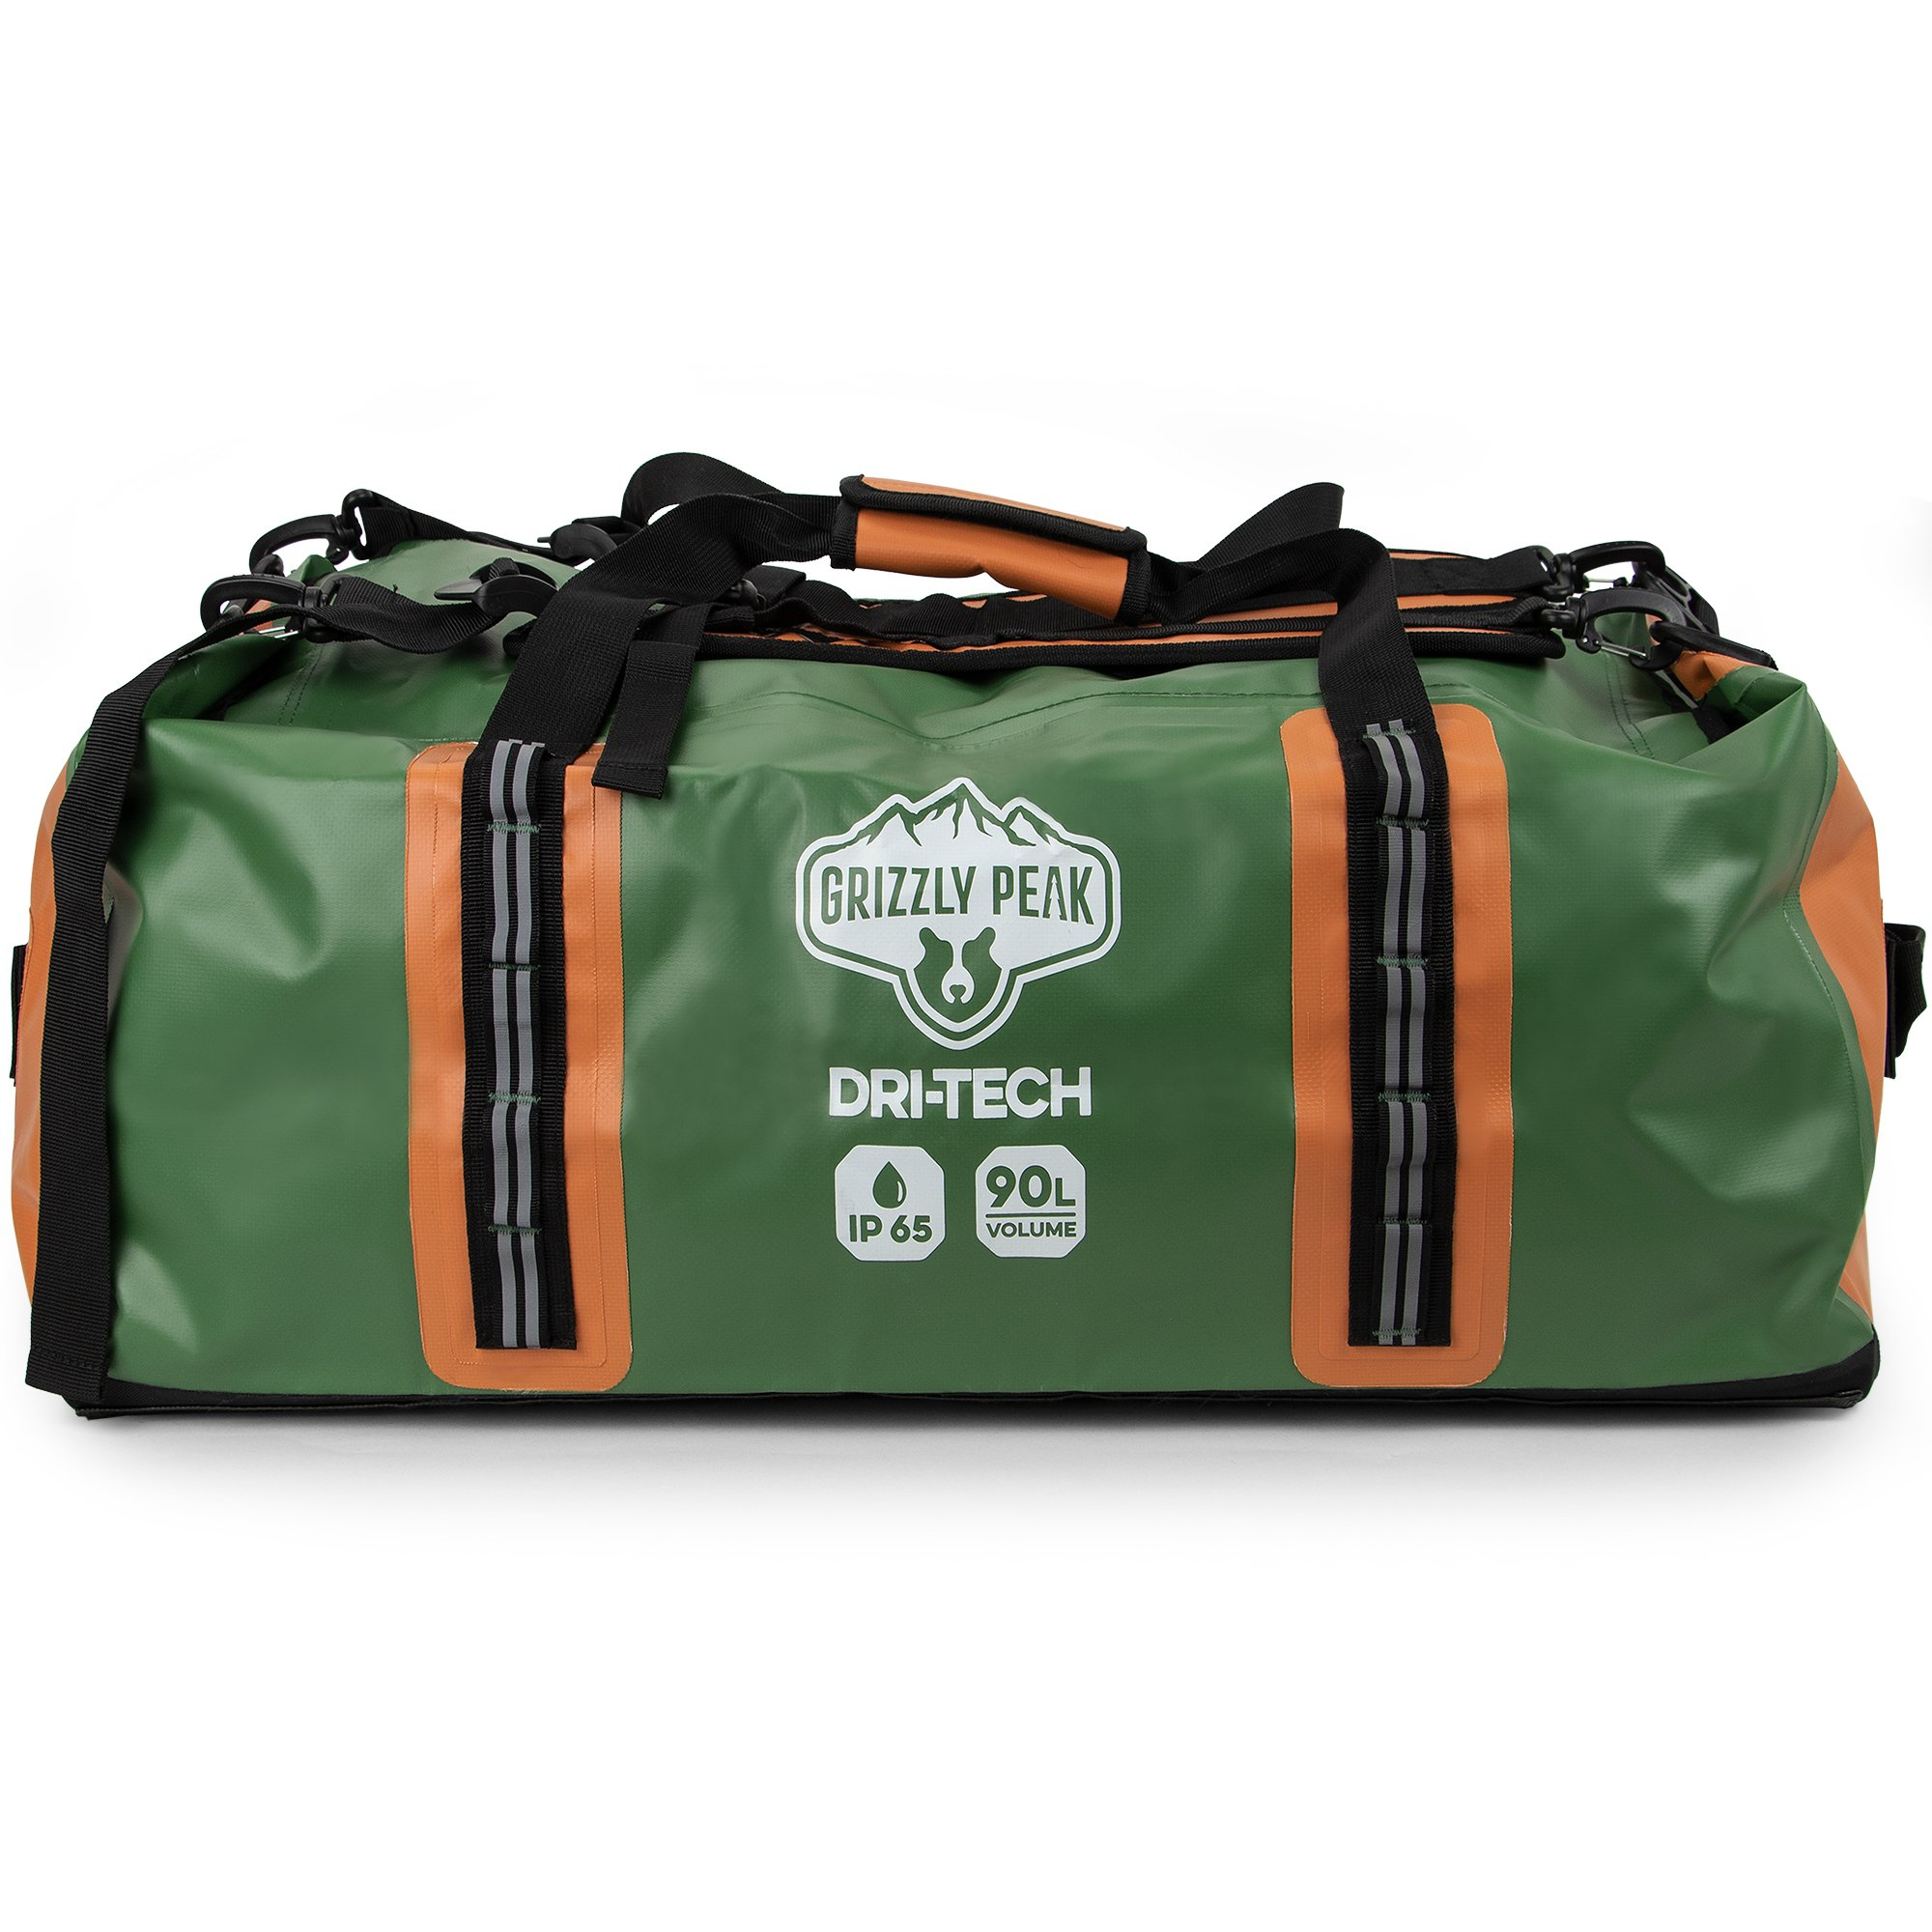 Grizzly Peak Dri-Tech Waterproof Dry Duffle Bag, IP 65 Lightweight Roll-Top Dry Bag with Backpacking Shoulder Straps & 4 Extra Pockets – Protects Personal Belongings